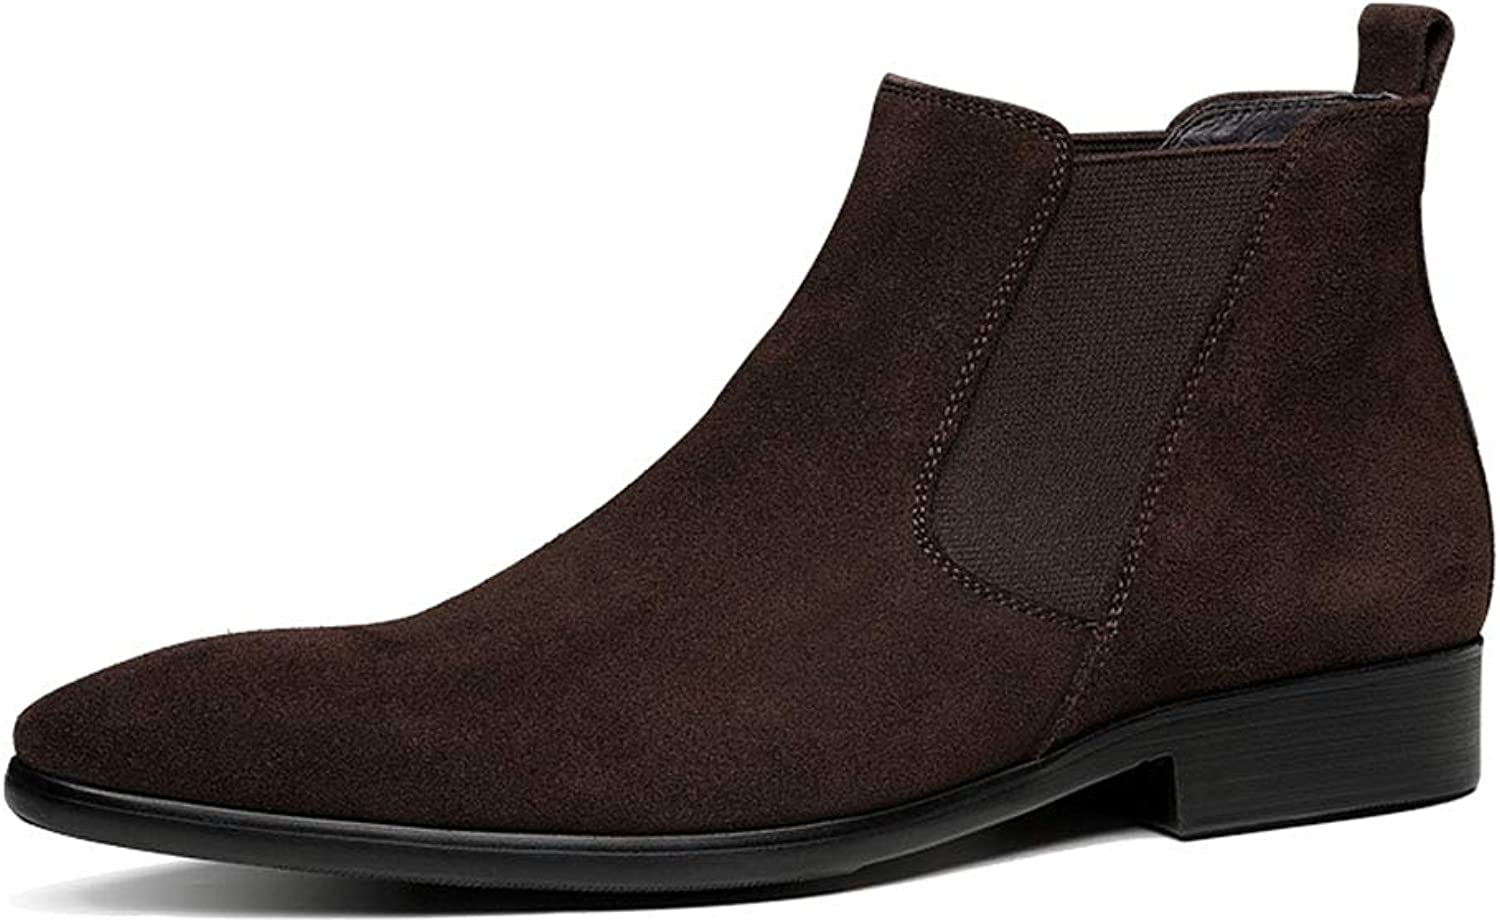 Jsix Men's Genuine Leather Ankle Boots Chelsea Boot shoes